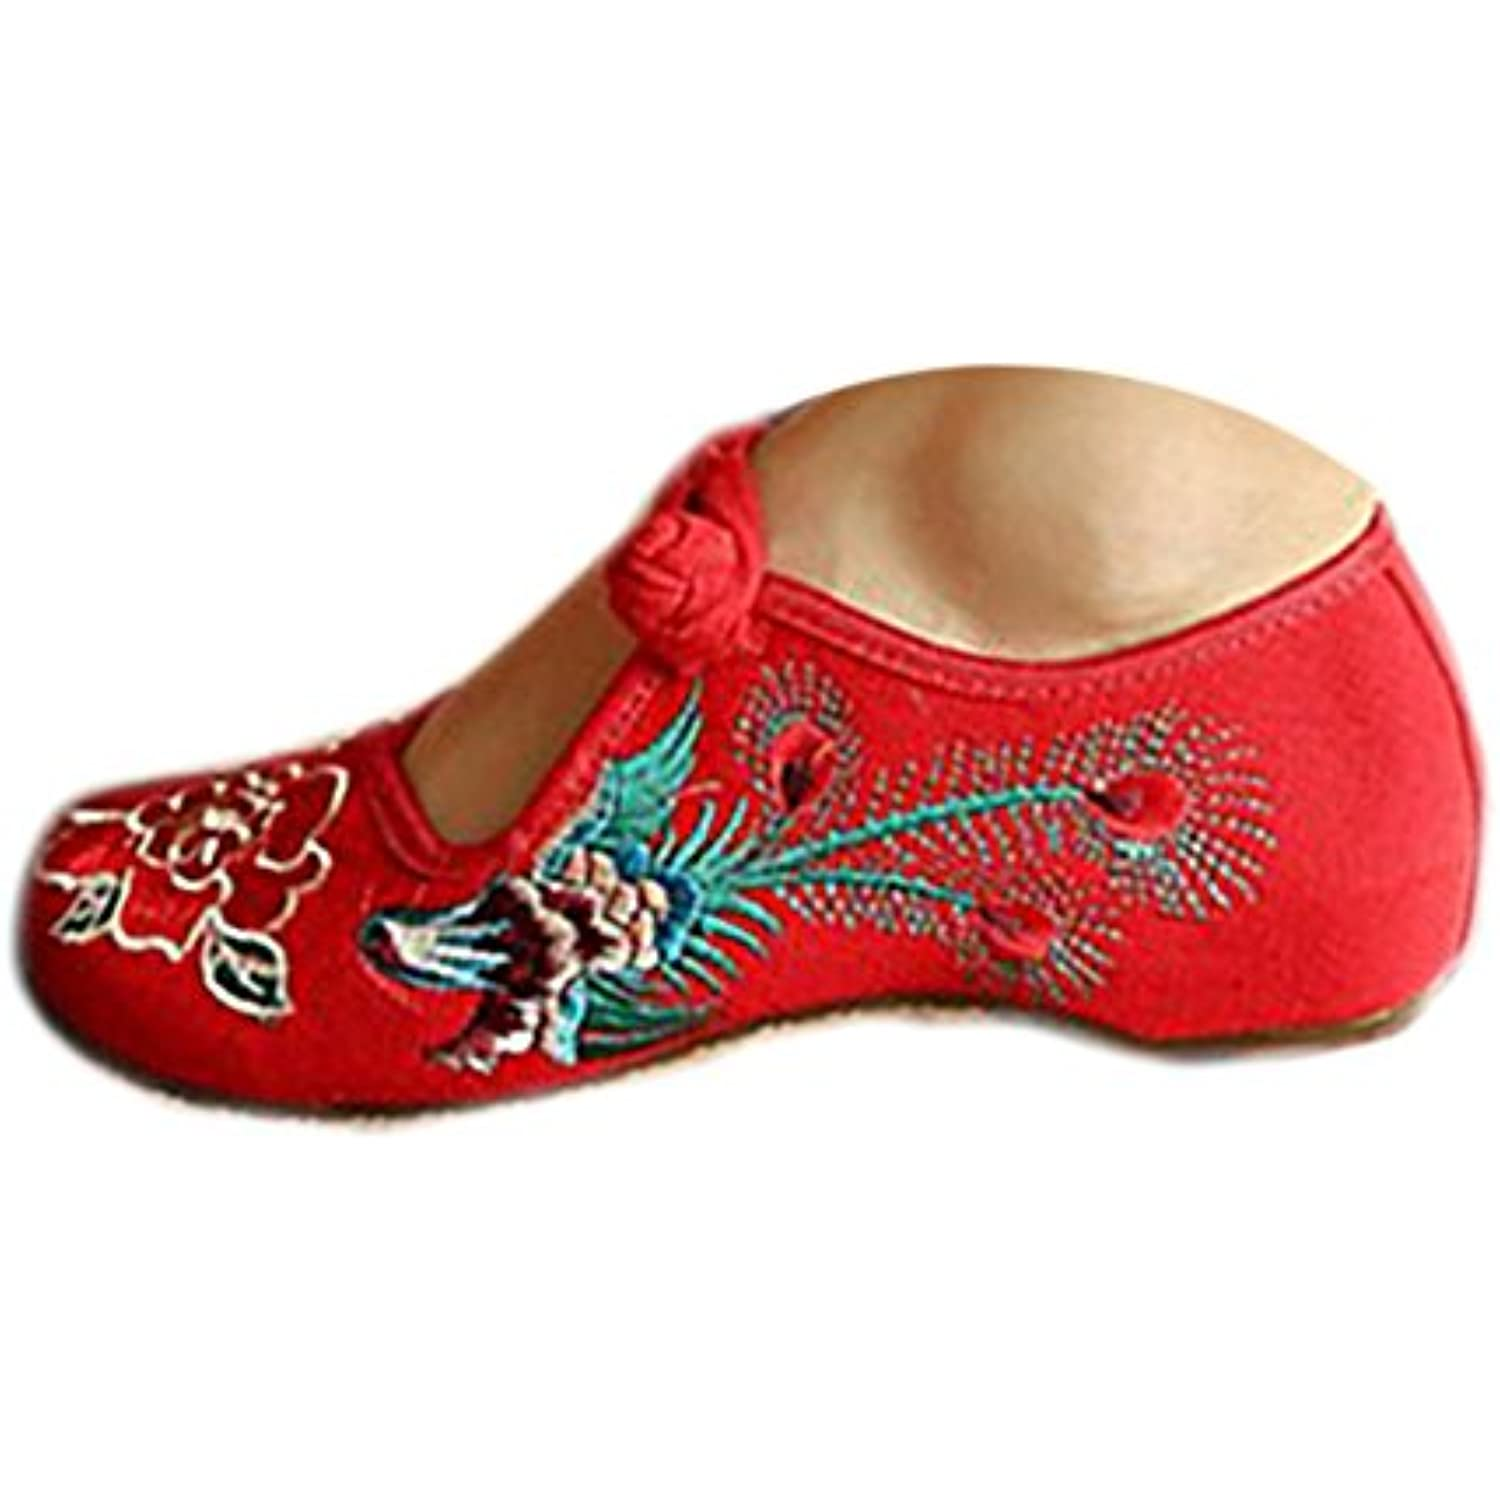 Chaussures Florales Chinoises Brodées Vintage Femme FENGHUANGXIMUDAN Ballerines Mary Mary Mary Jane Ballerine Flat Ballet... - B0714MDTQS - df0b68